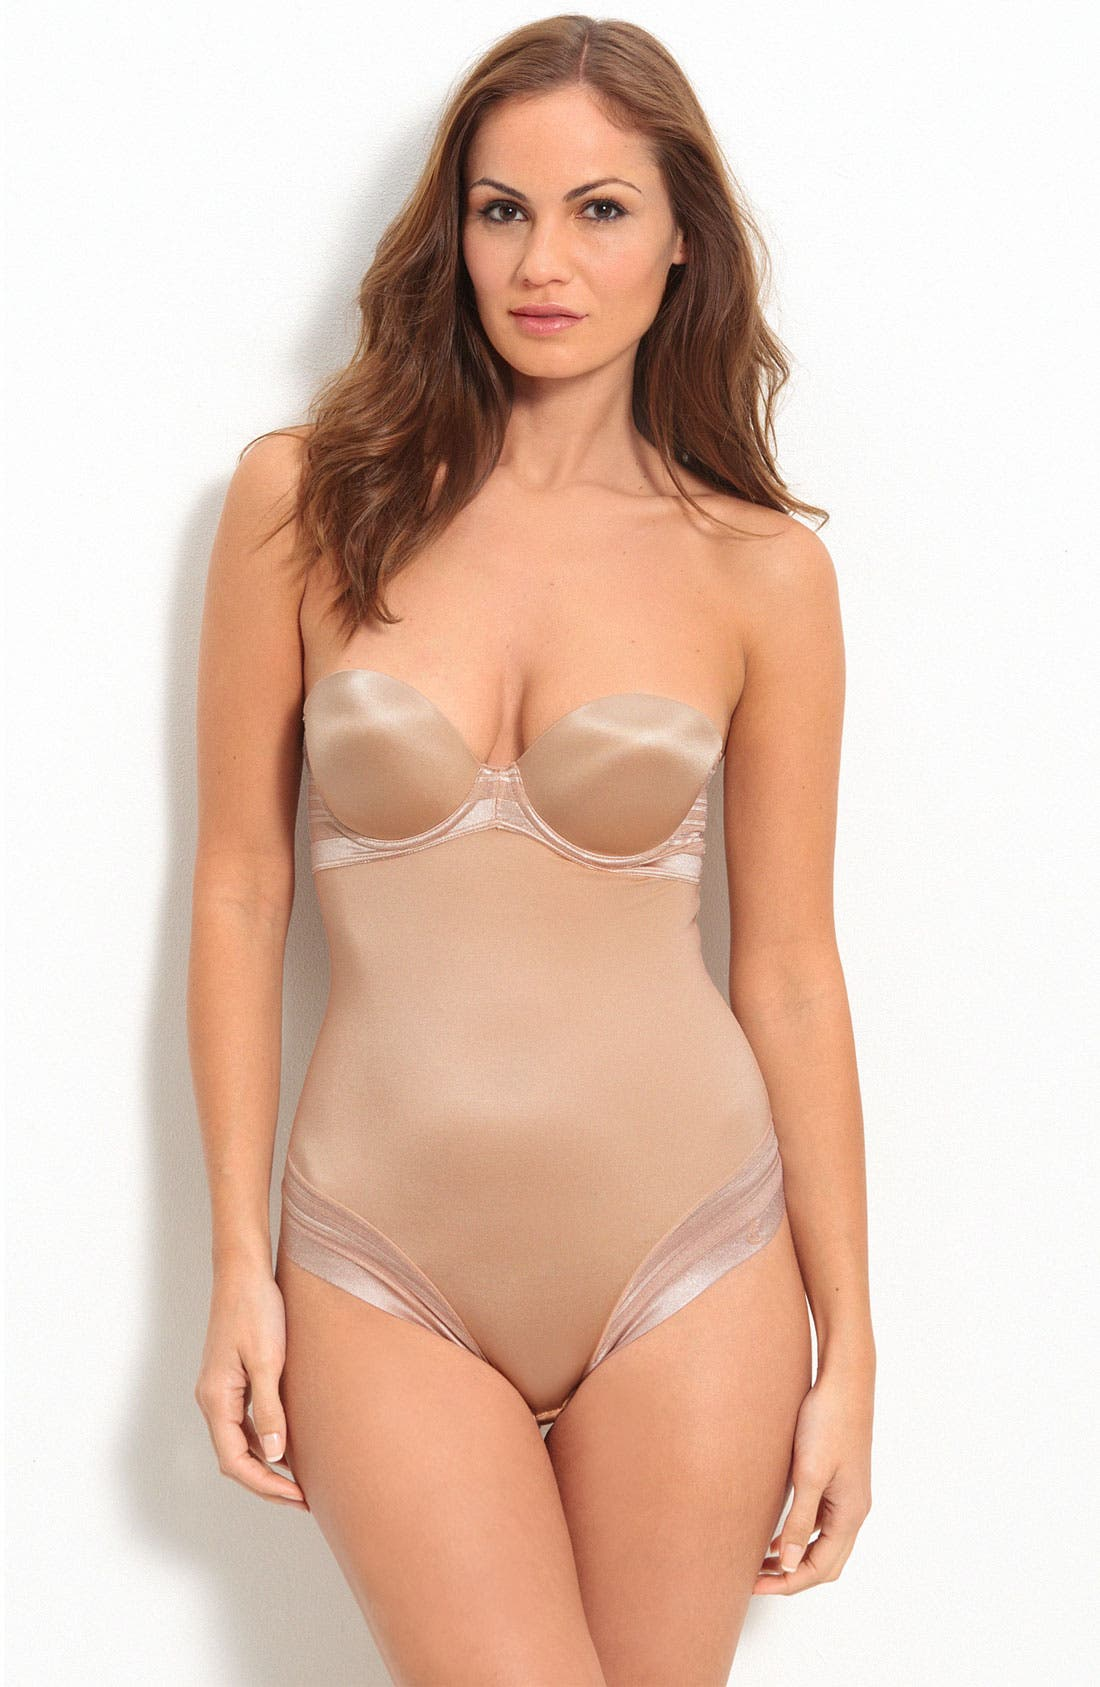 Alternate Image 1 Selected - Chantelle Intimates 'Pure' Convertible Strapless Bodysuit with Thong Back